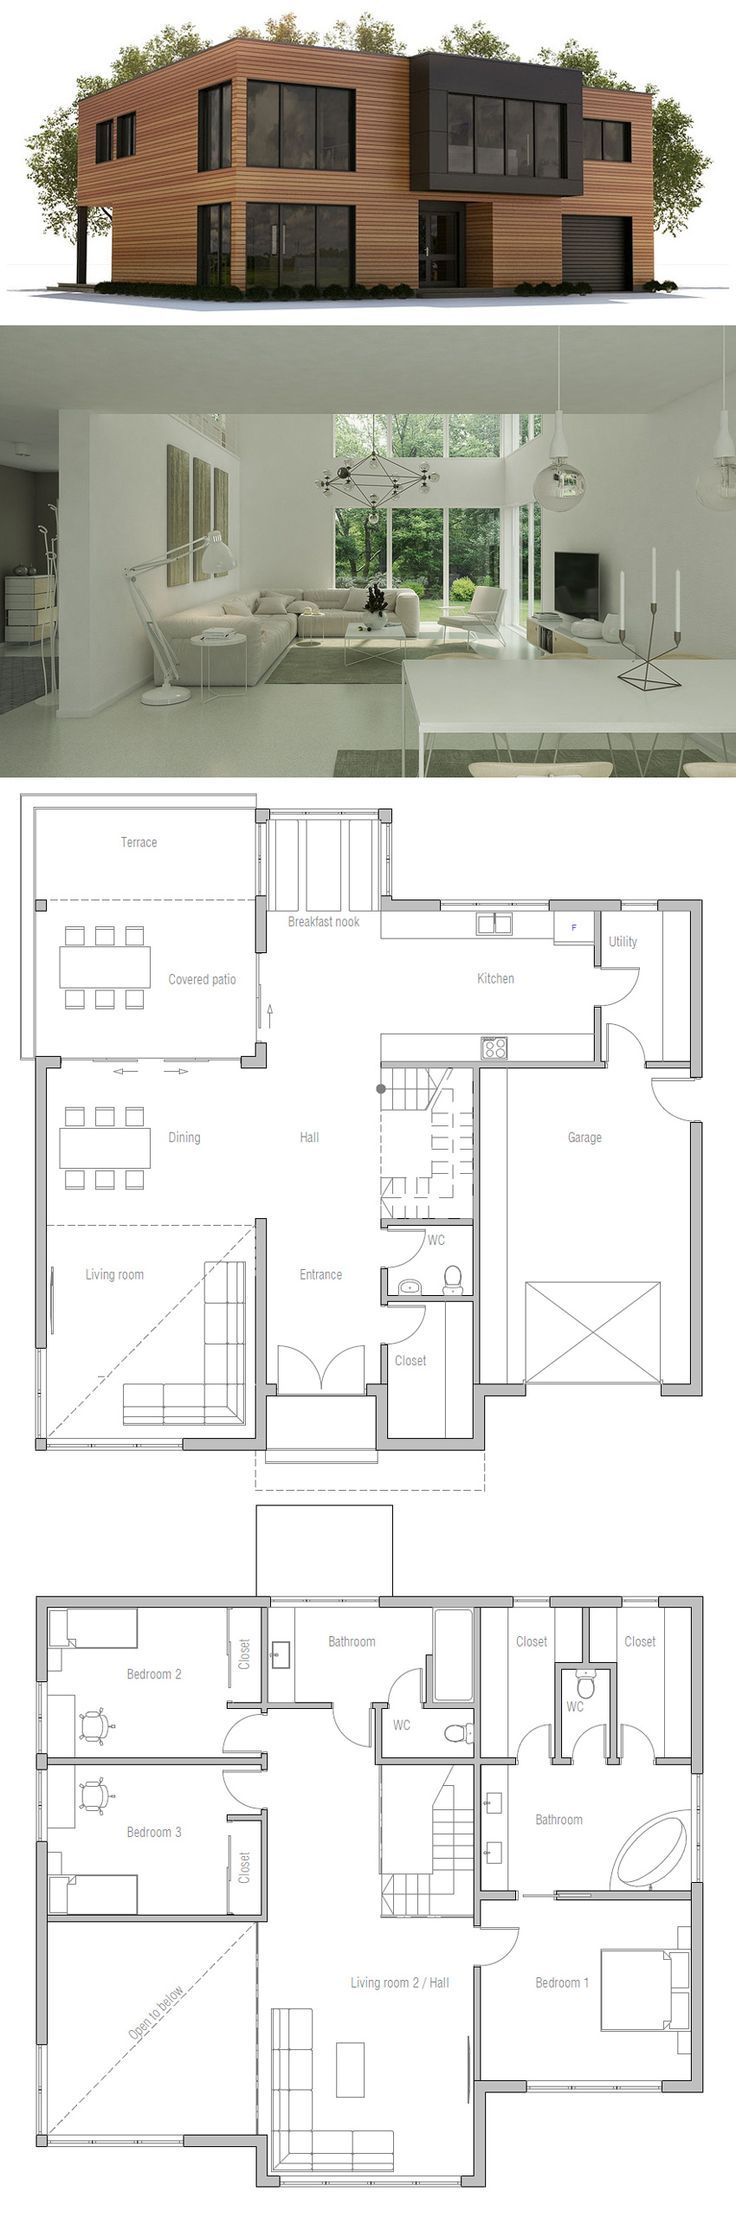 37 best plans floorplans drawing house plano arquitectonico 37 best plans floorplans drawing house plano arquitectonico images on pinterest architecture projects and models